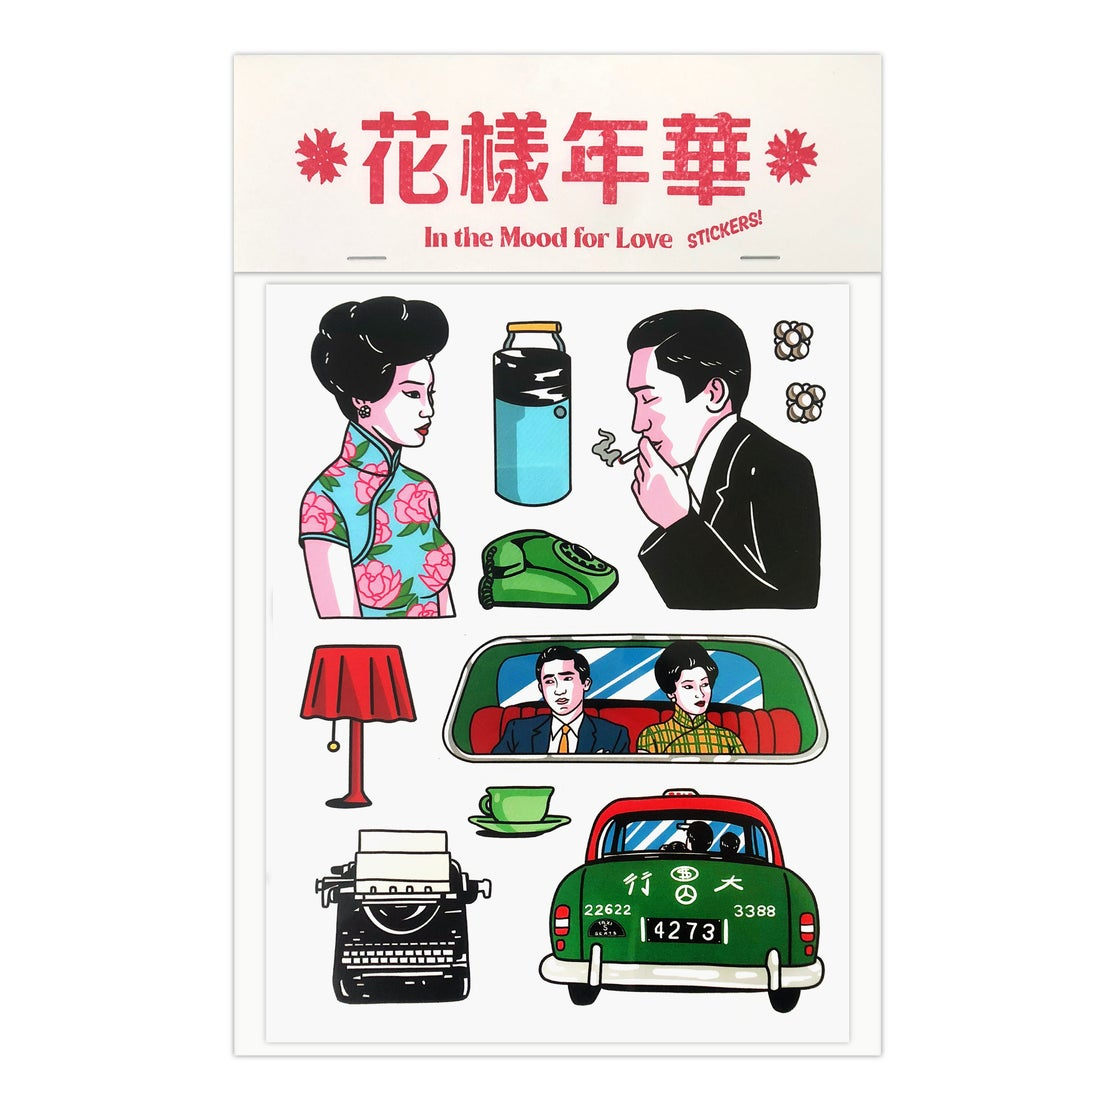 Image of In the Mood for Love sticker pack by K&N for Asian Film Archive – Retrospective: Wong Kar Wai